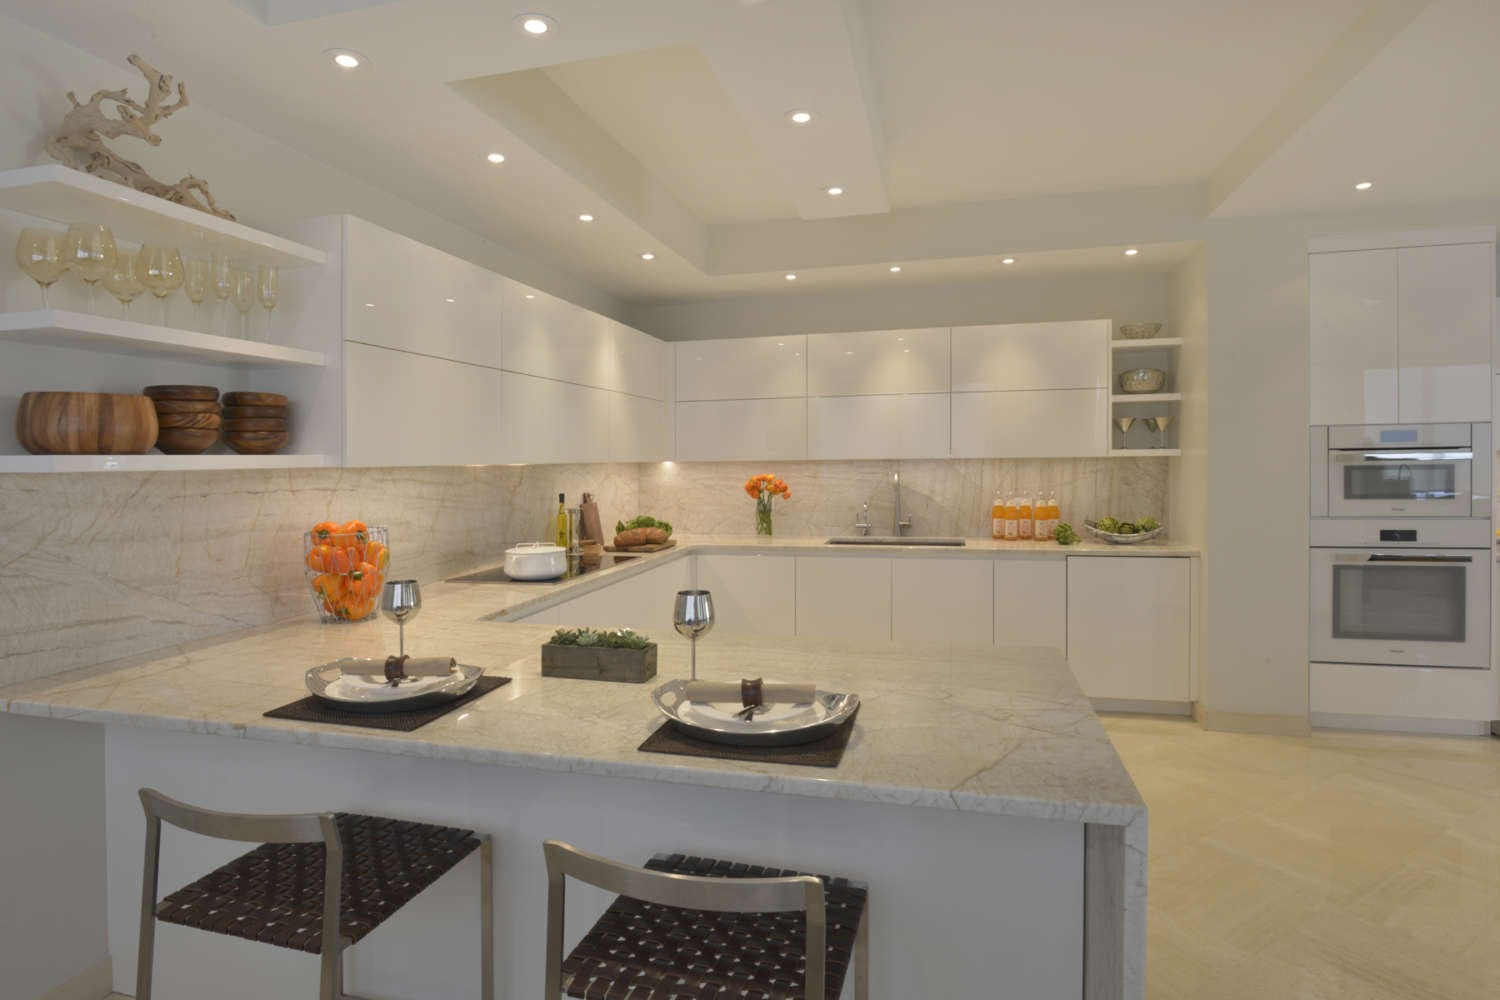 U-shaped kitchen incorporates seating, open shelving and clean lines. The room features fully custom cabinets are high gloss white, flat panel, frameless design by Artcraft, light marble countertop and backsplash with veining and light porcelain tile flooring. Design by Tabitha Tepe of Bilotta Kitchens.